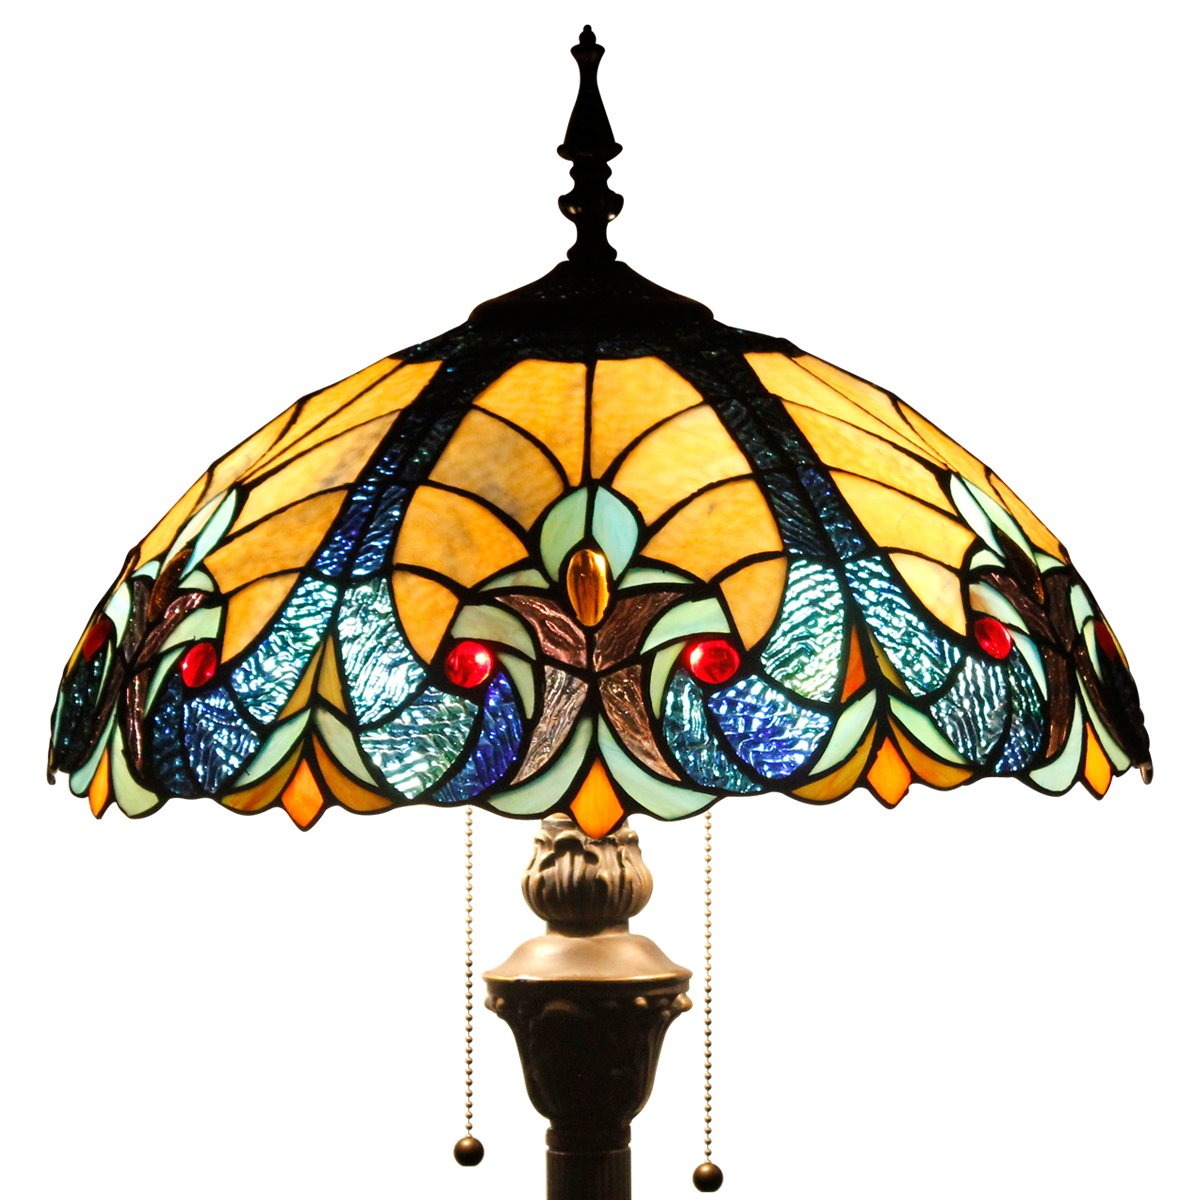 Tiffany Style Floor Standing Lamp 64 Inch Tall Blue Liaison Stained Glass Shade 2 Light Antique Base for Bedroom Living Room Reading Lighting Coffee Table Set S160E WERFACTORY by WERFACTORY